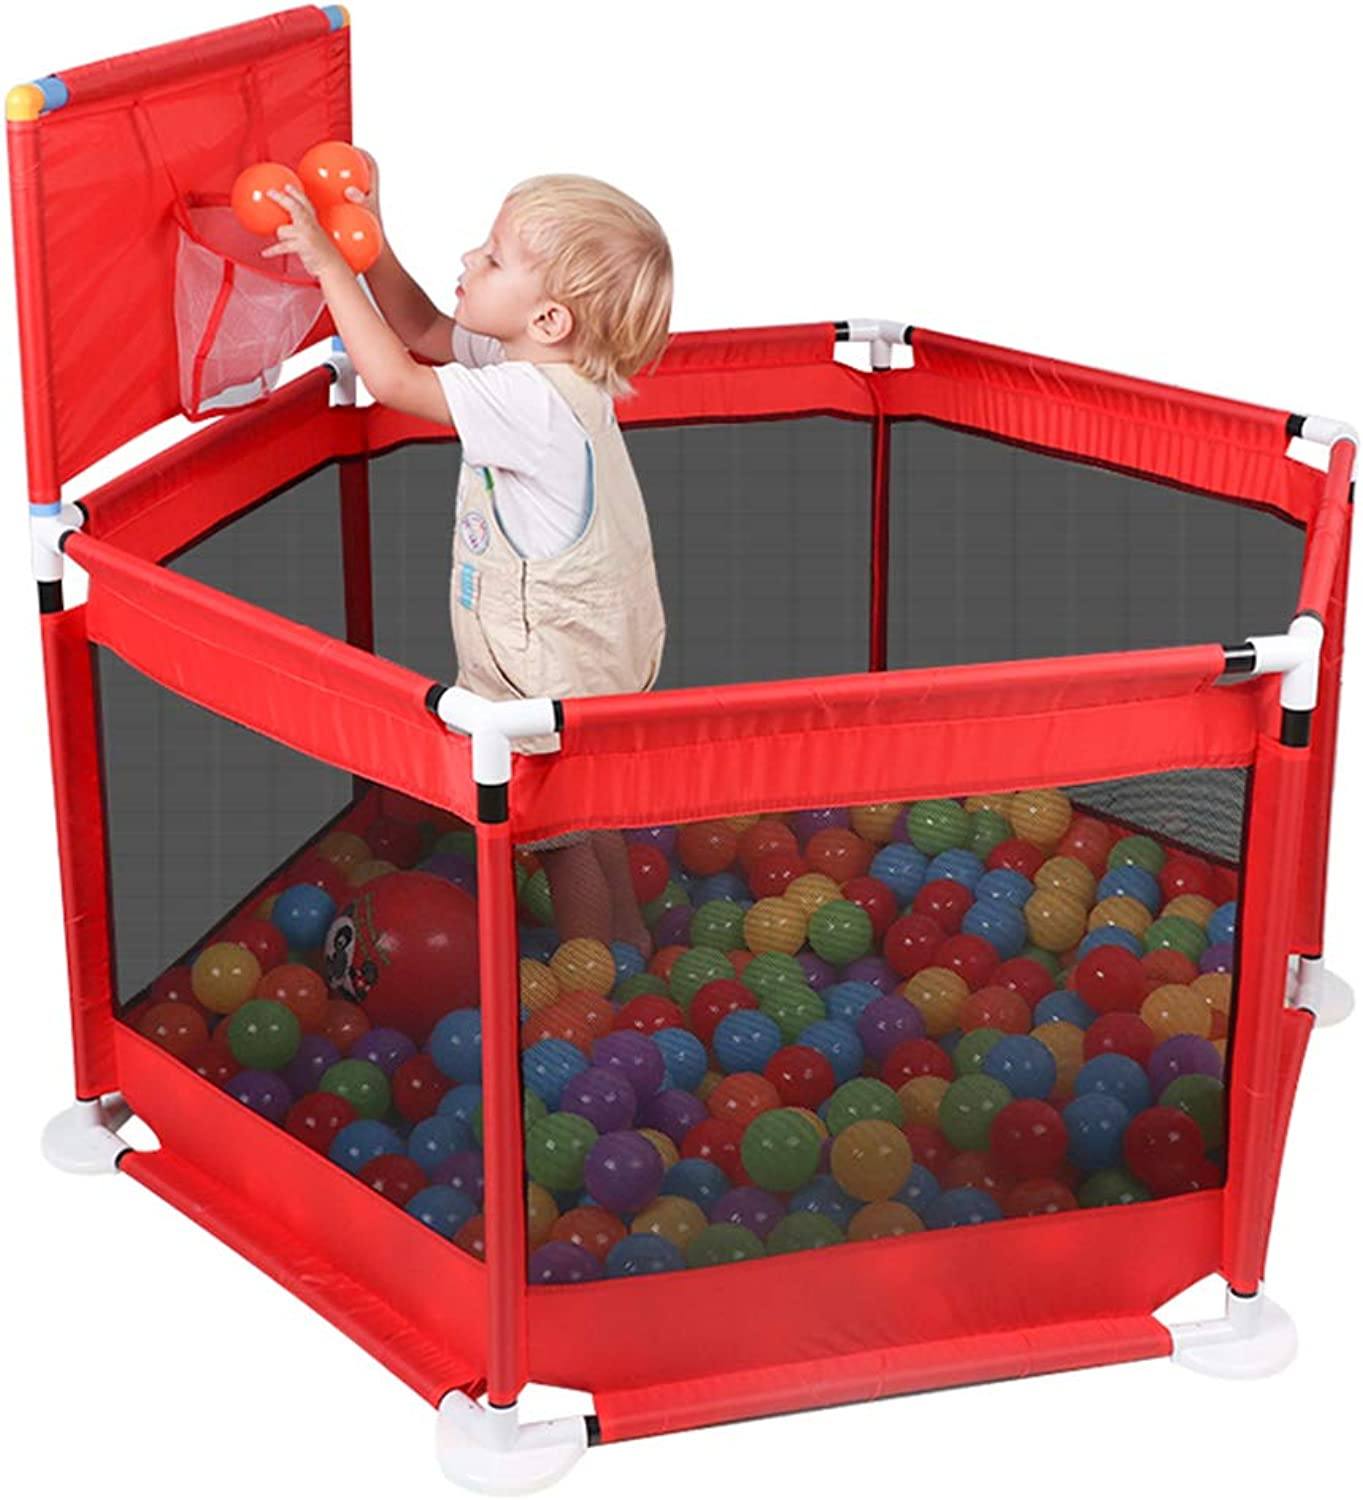 Baby Fence Indoor Playground Predection Safety Door Kids Crawling Mat Carpet Made ABS Materials